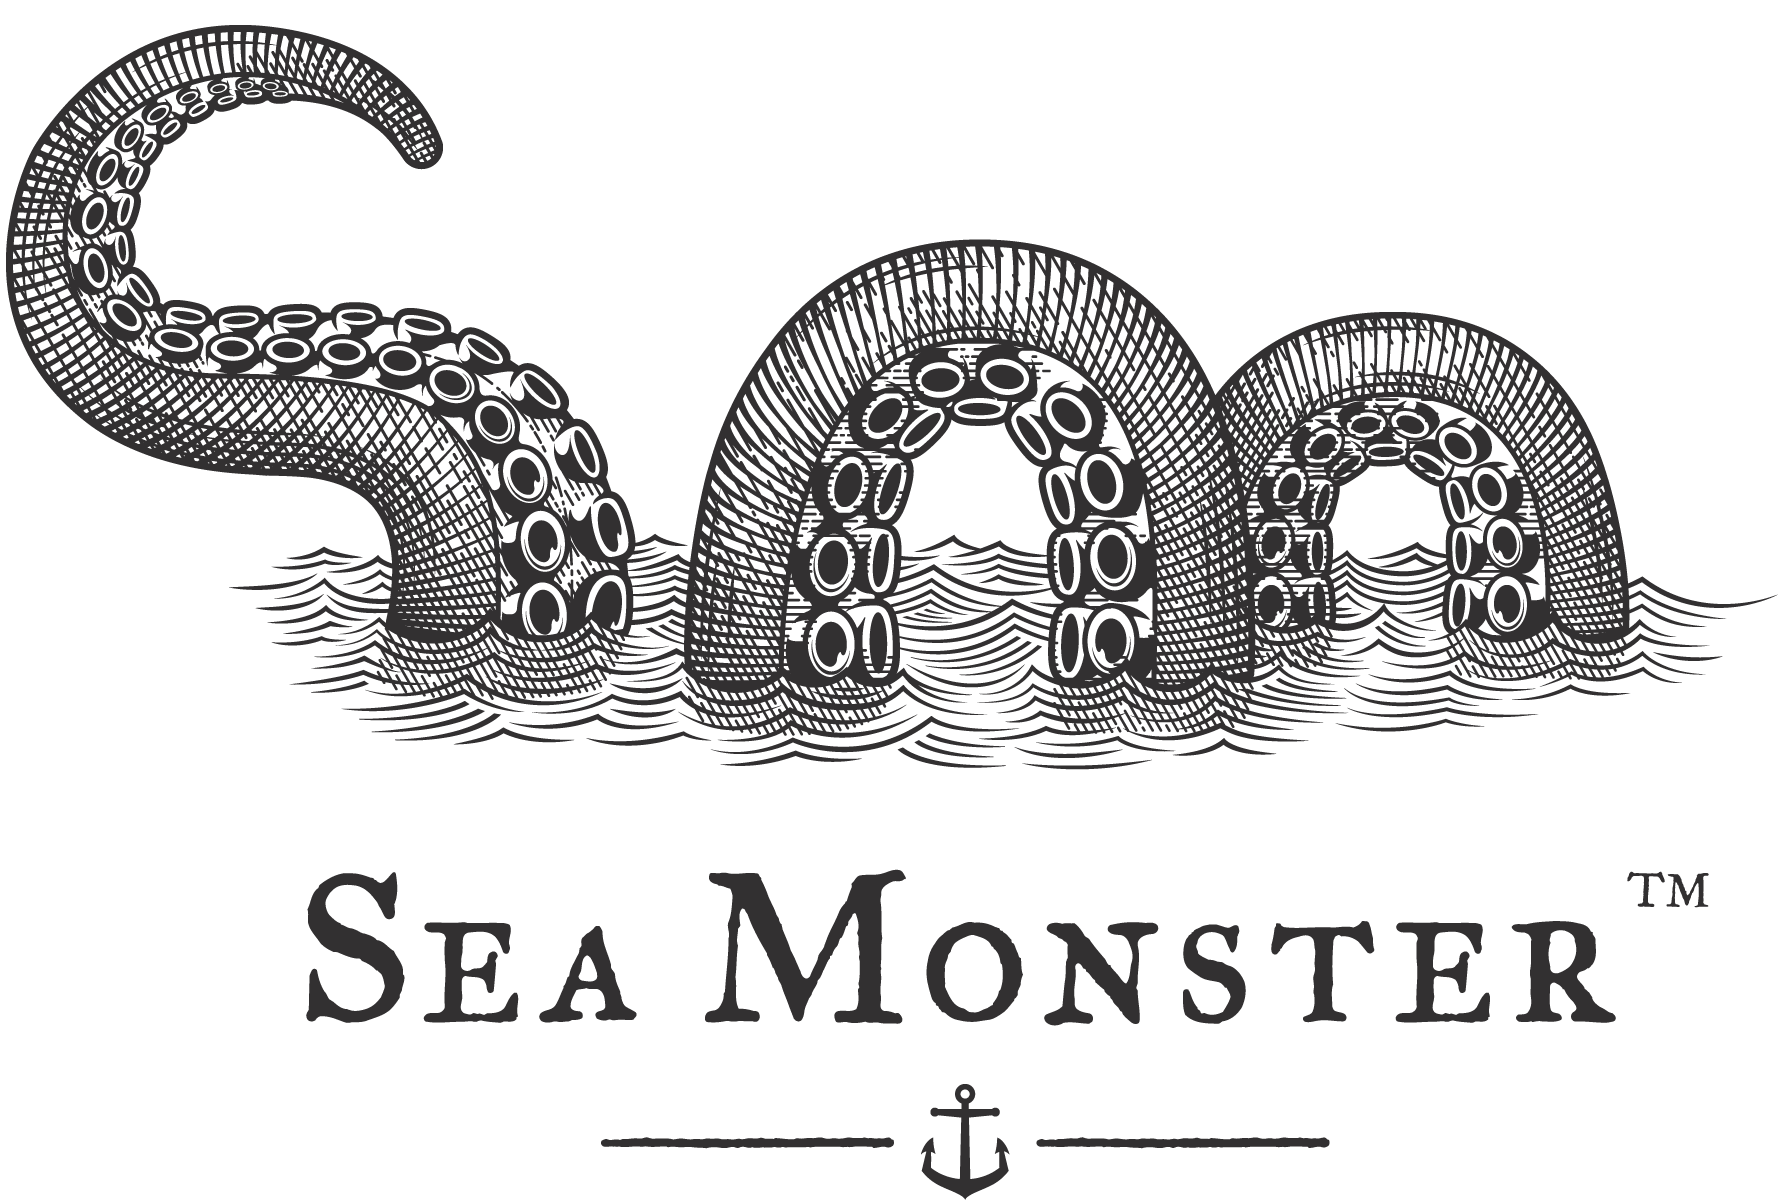 SEA MONSTER_black_TM.png